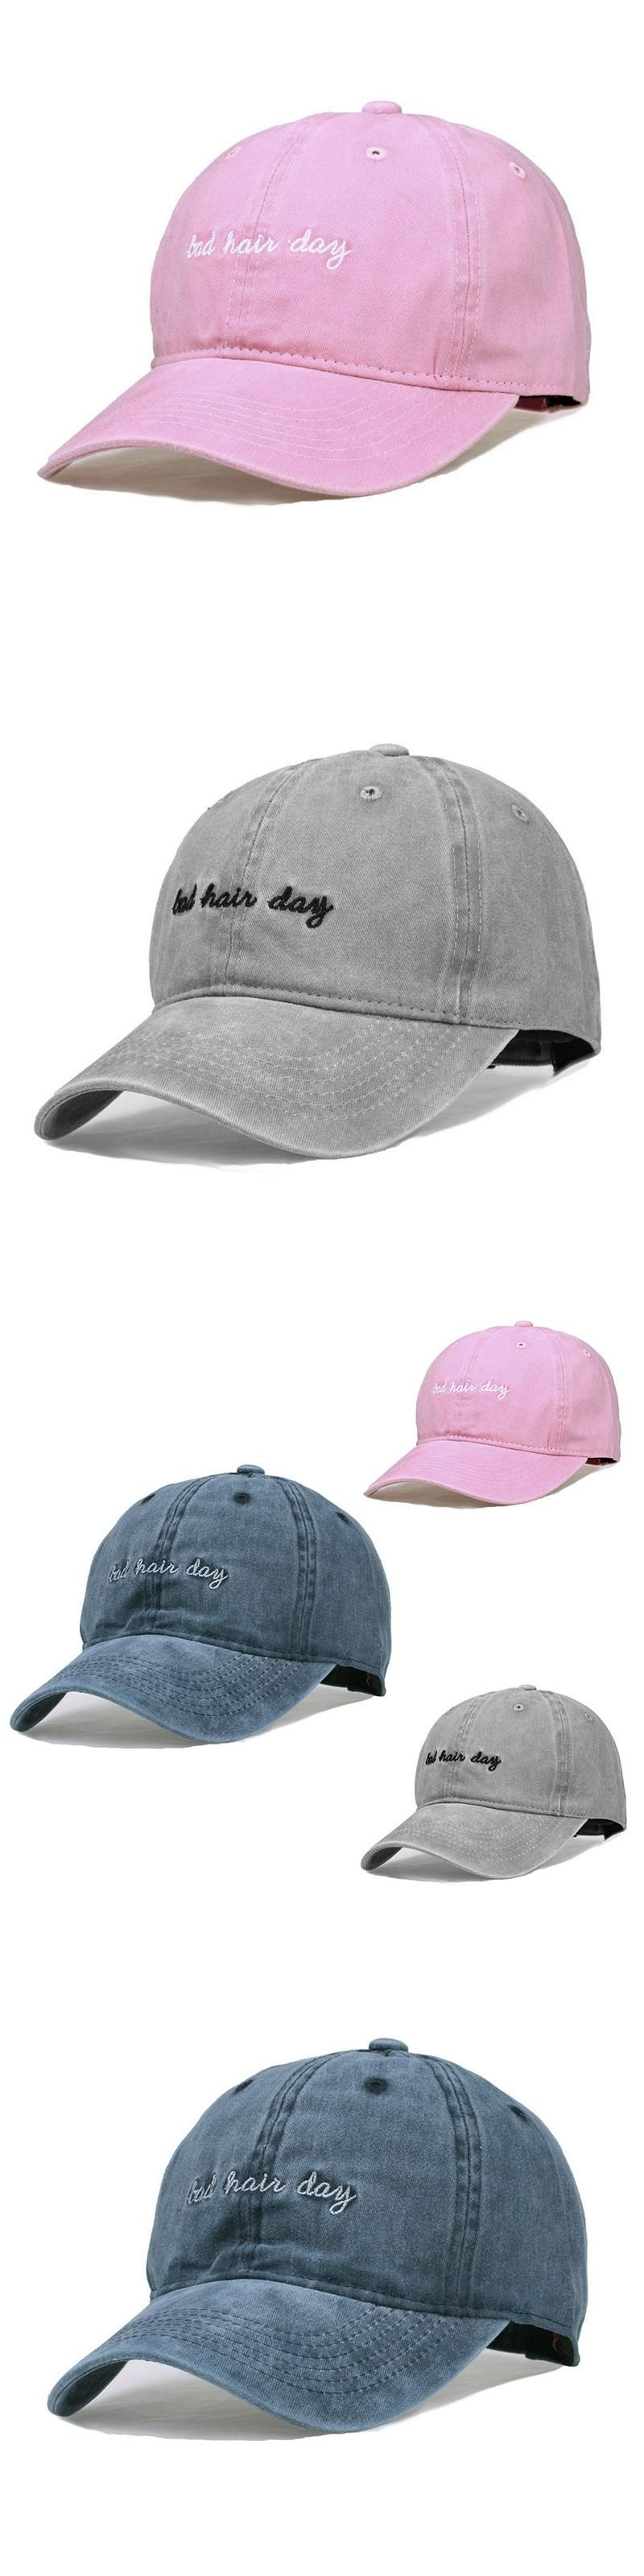 5980fa1ec77 New Caps Women Men Unisex Bad Hair Day Letters Embroidery Baseball Casual  Male Female Sun Hats Solid Color Baseball Cool Hat